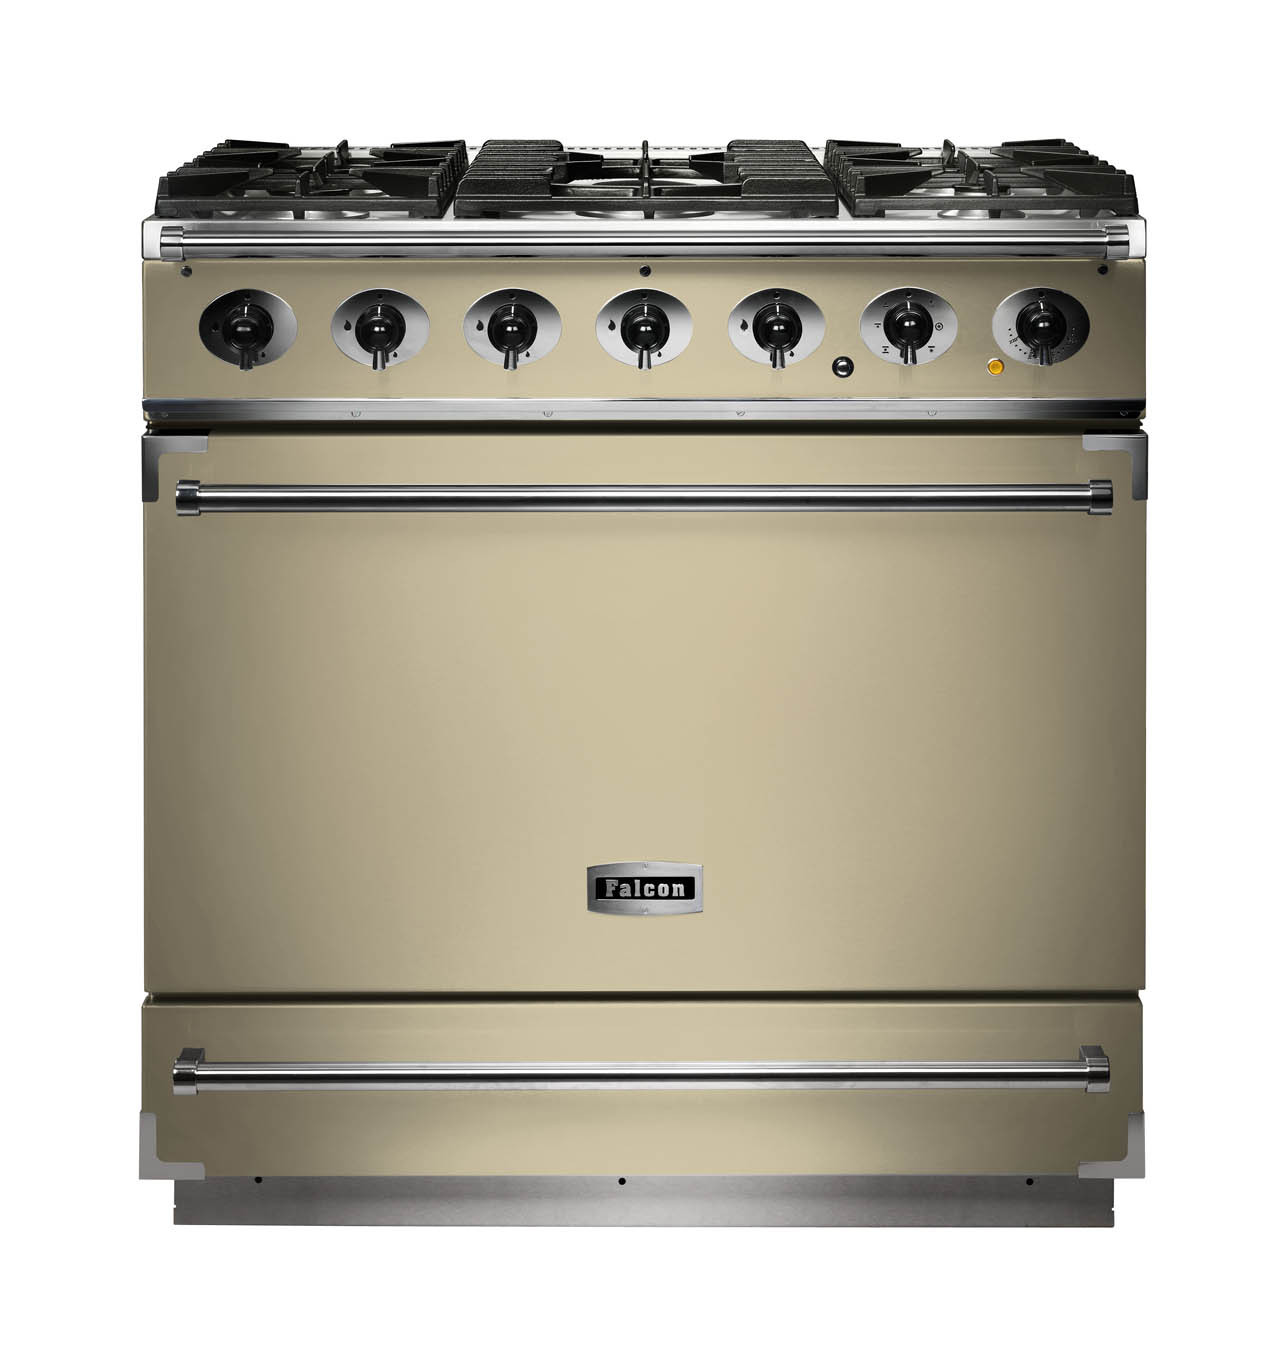 Falcon 900S Dual Fuel Cream Range Cooker with Matt Pan Supports